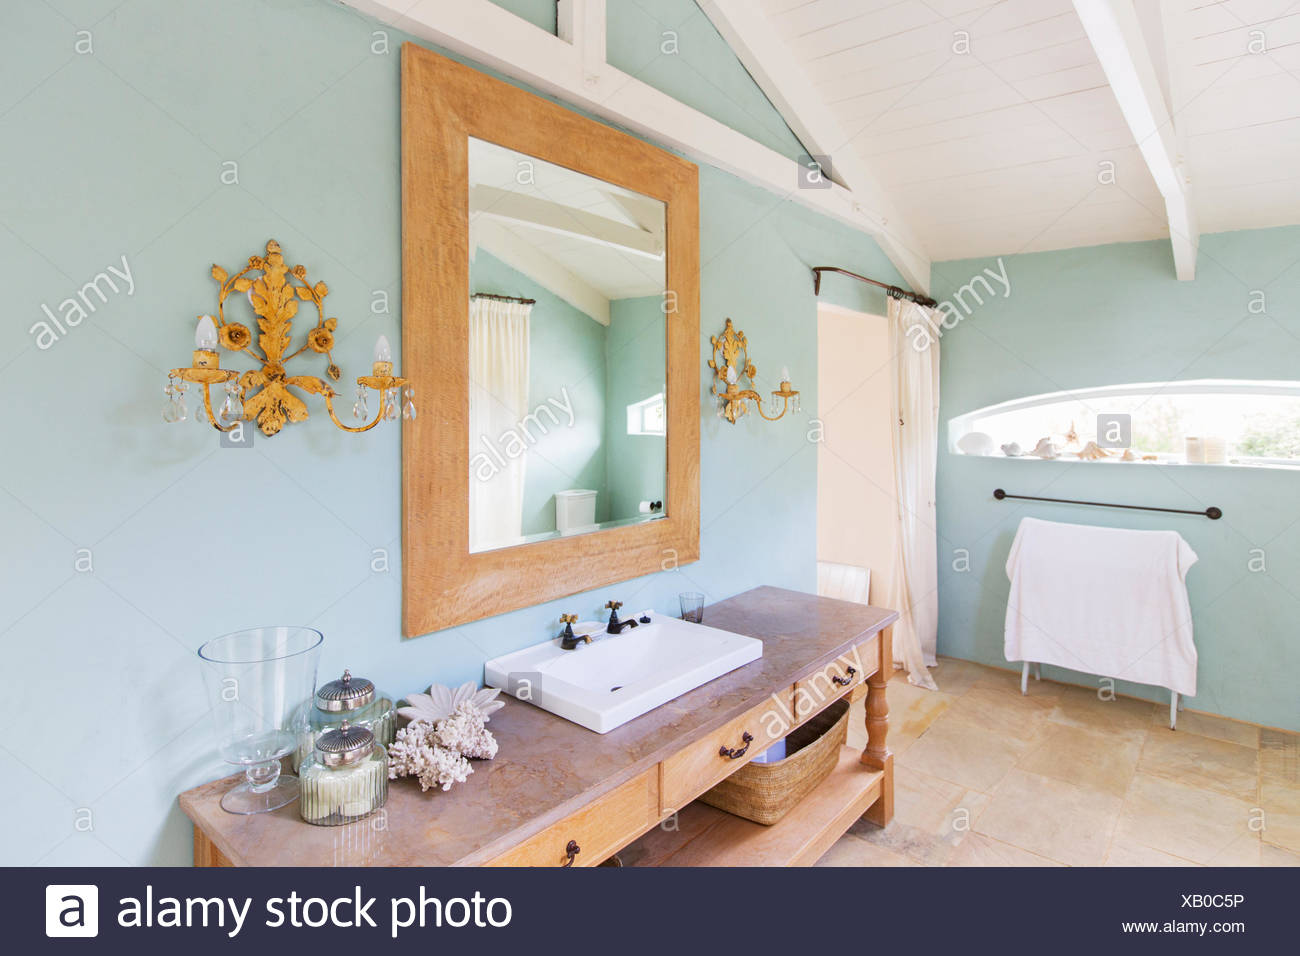 Sink and mirror in rustic bathroom - Stock Image